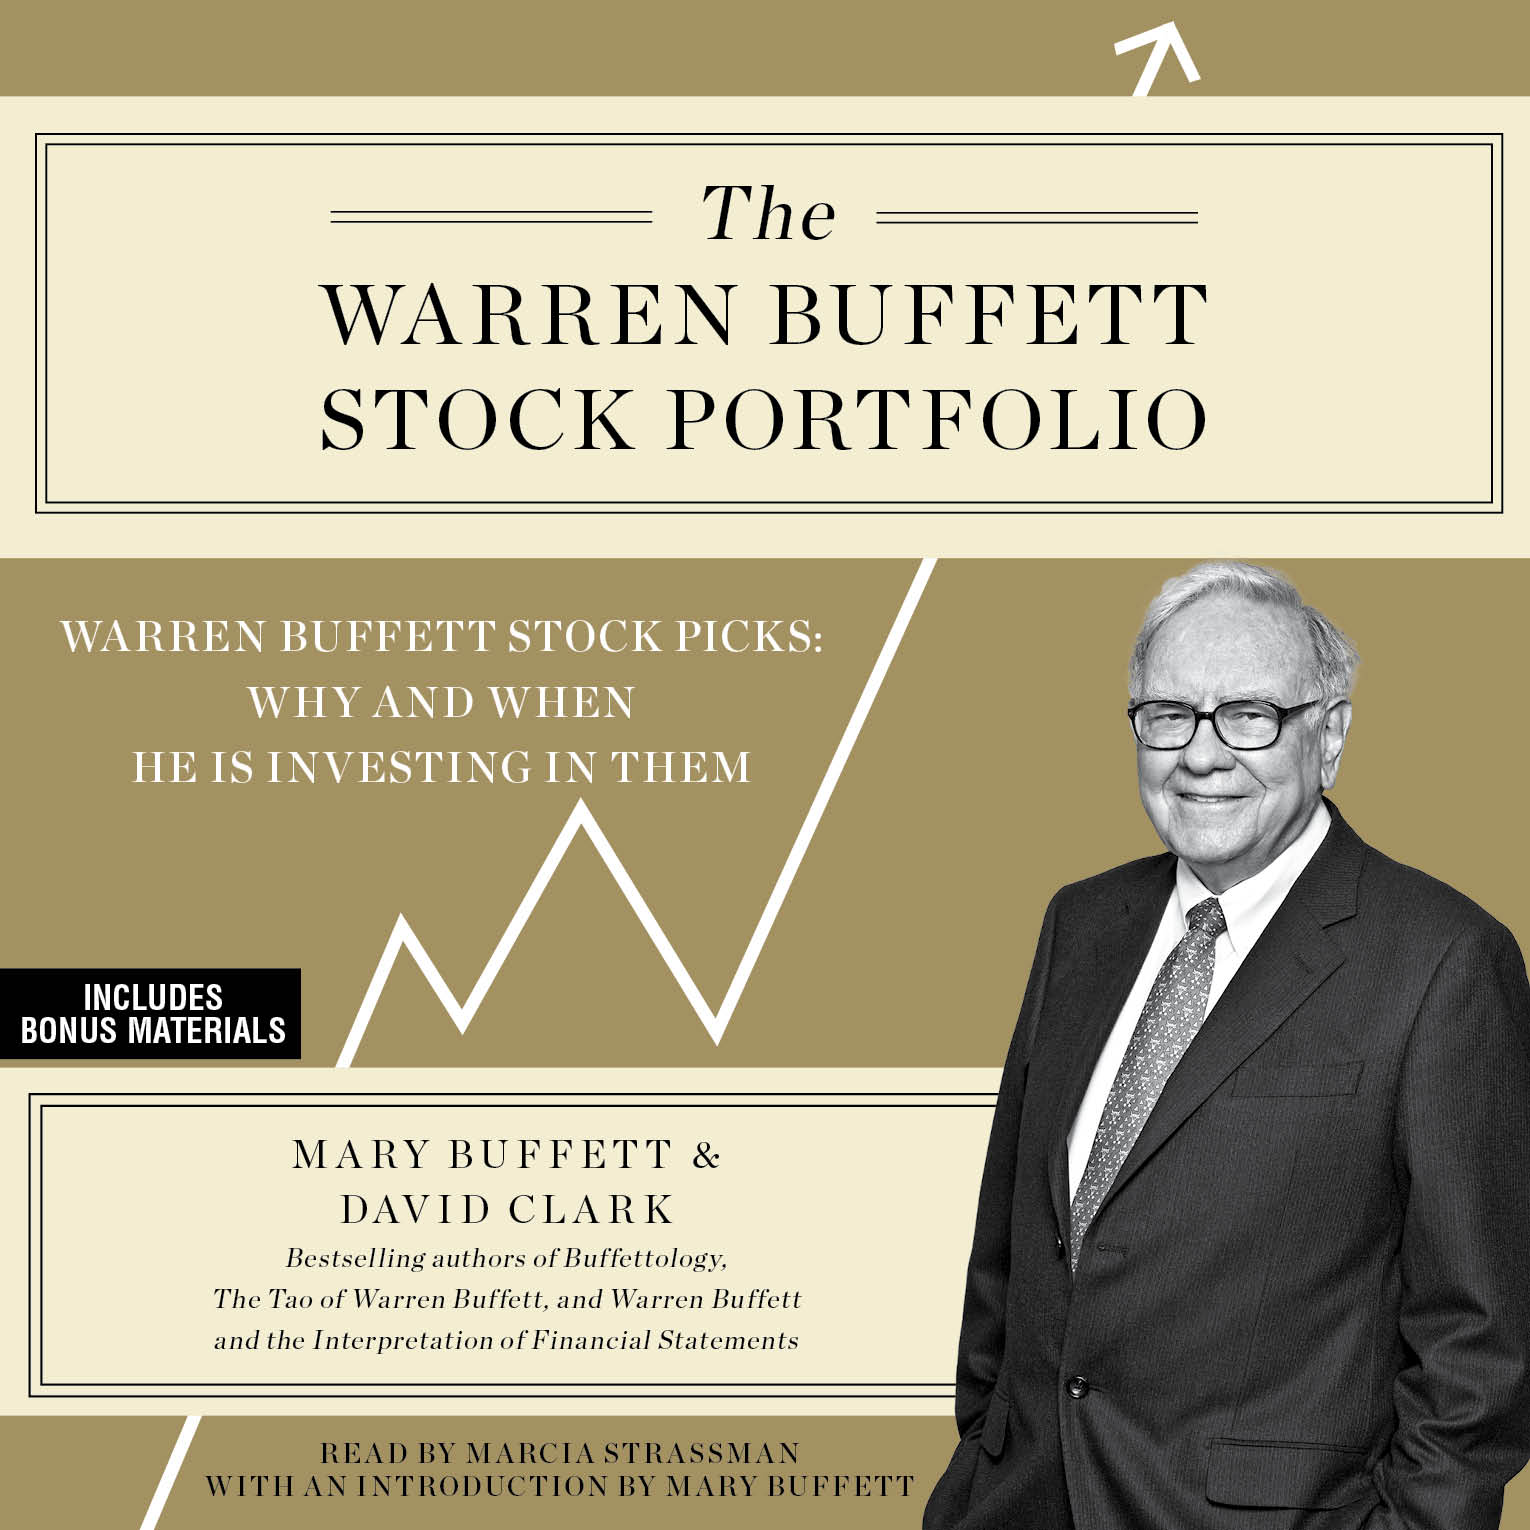 essays of warren buffett audiobook The year 2015 marks the fiftieth anniversary of berkshire hathaway under  warren buffett's leadership, a milestone worth commemorating.